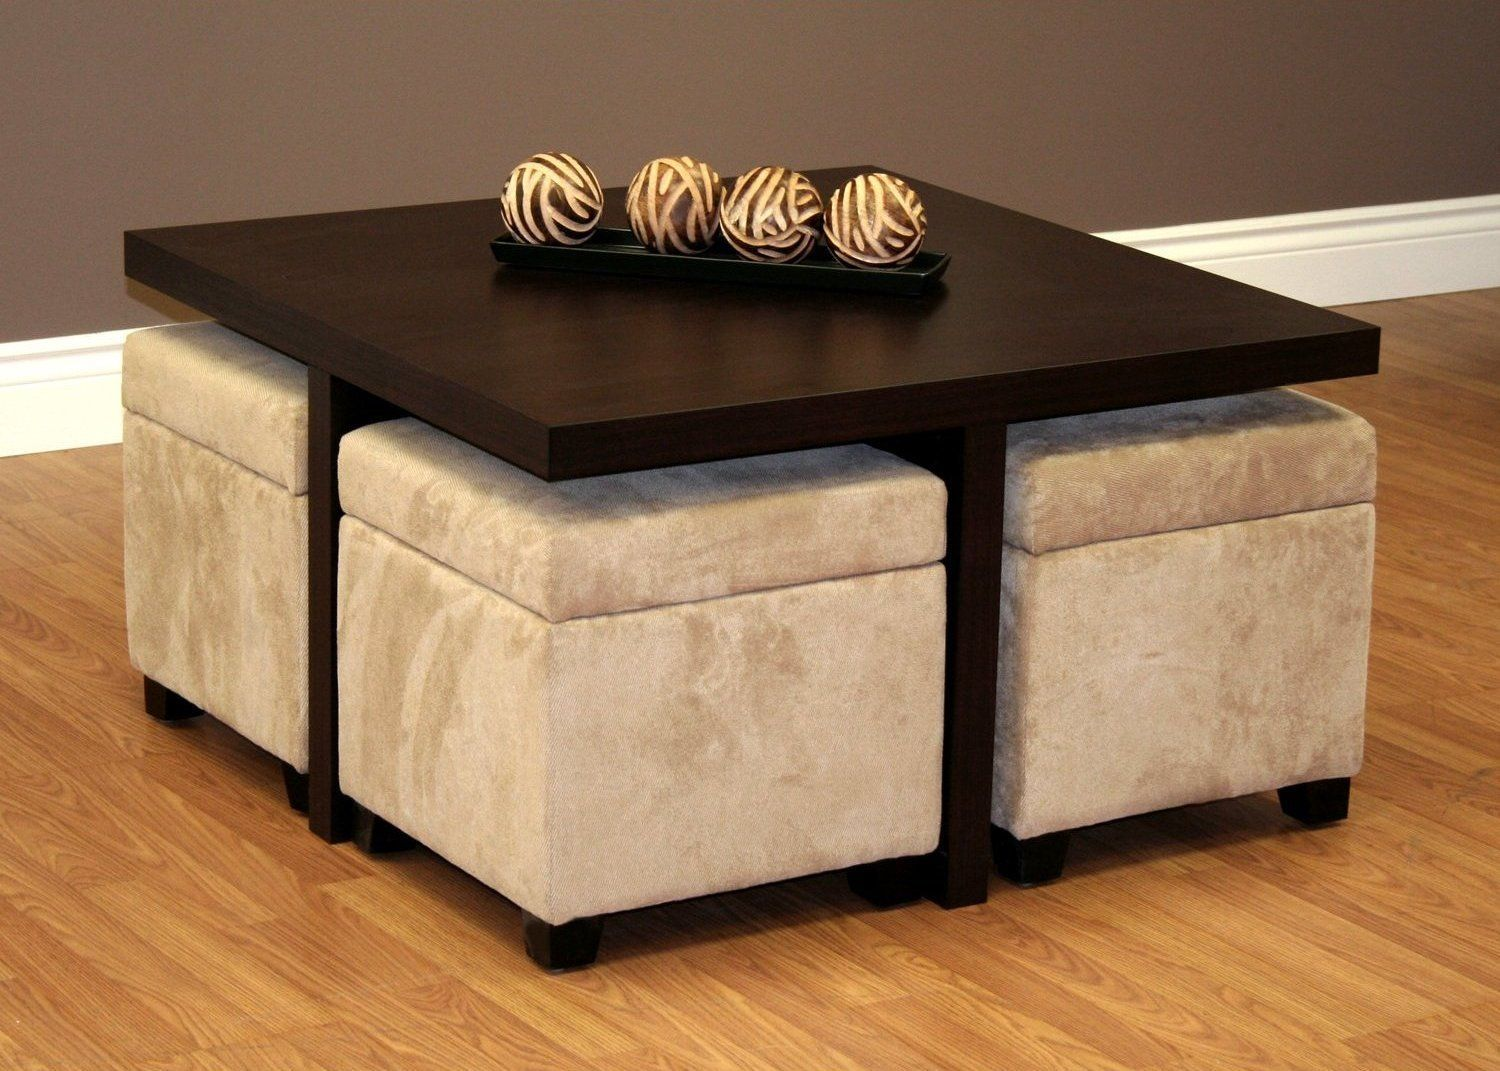 15 Coffee Table Decor Ideas For A More Lively Living Room Storage Ottoman Coffee Table Coffee Table Square Coffee Table With Stools Underneath [ 1071 x 1500 Pixel ]